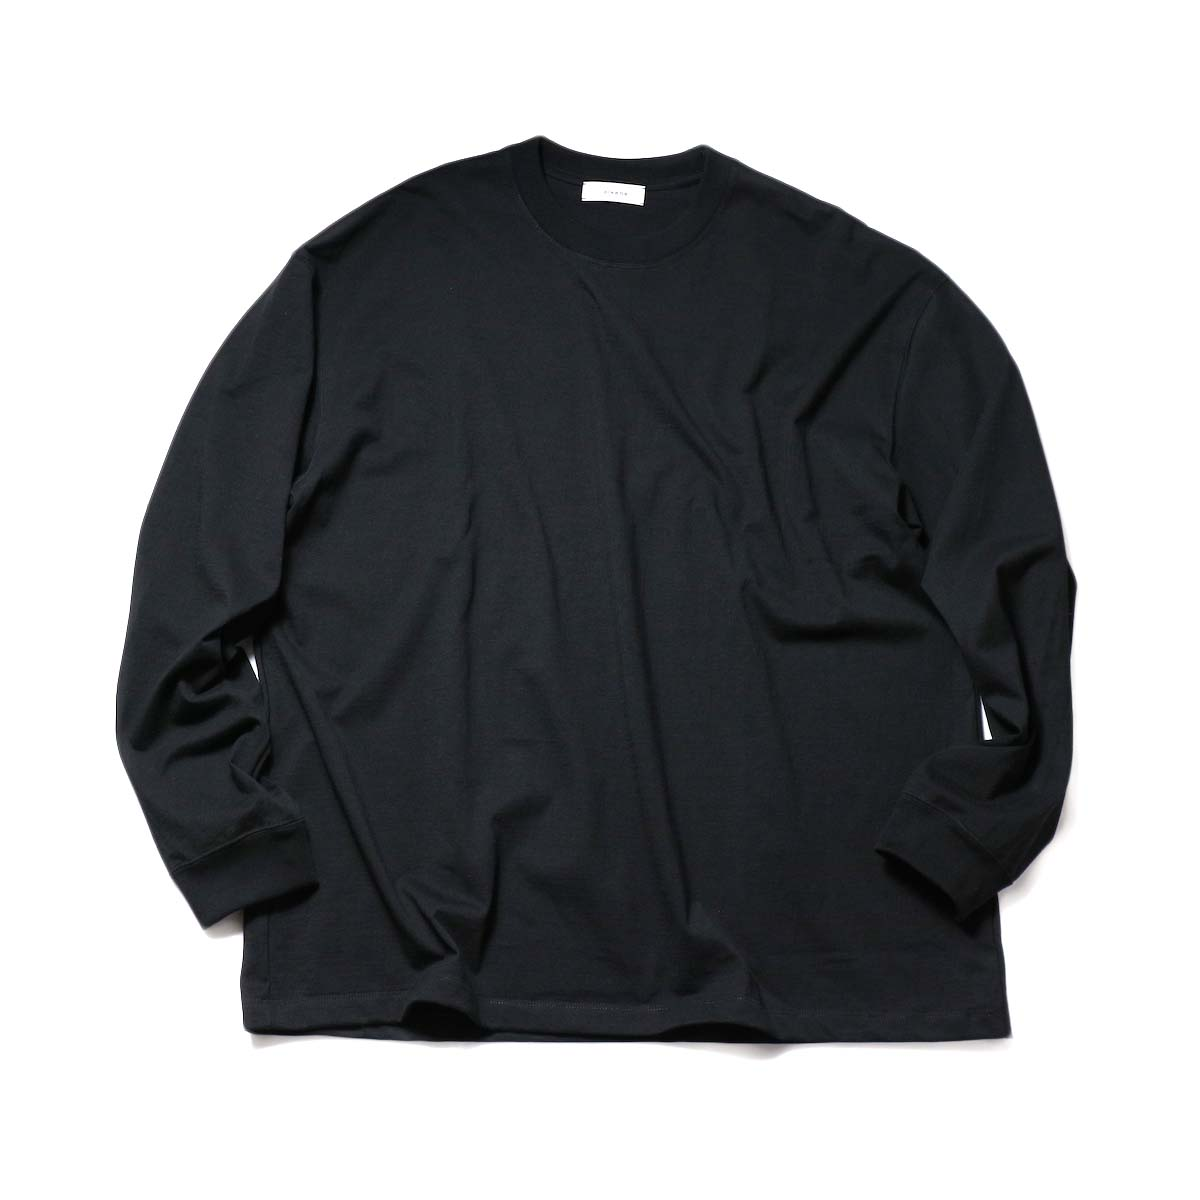 alvana / TANGUIS L/S TEE SHIRTS (Black)